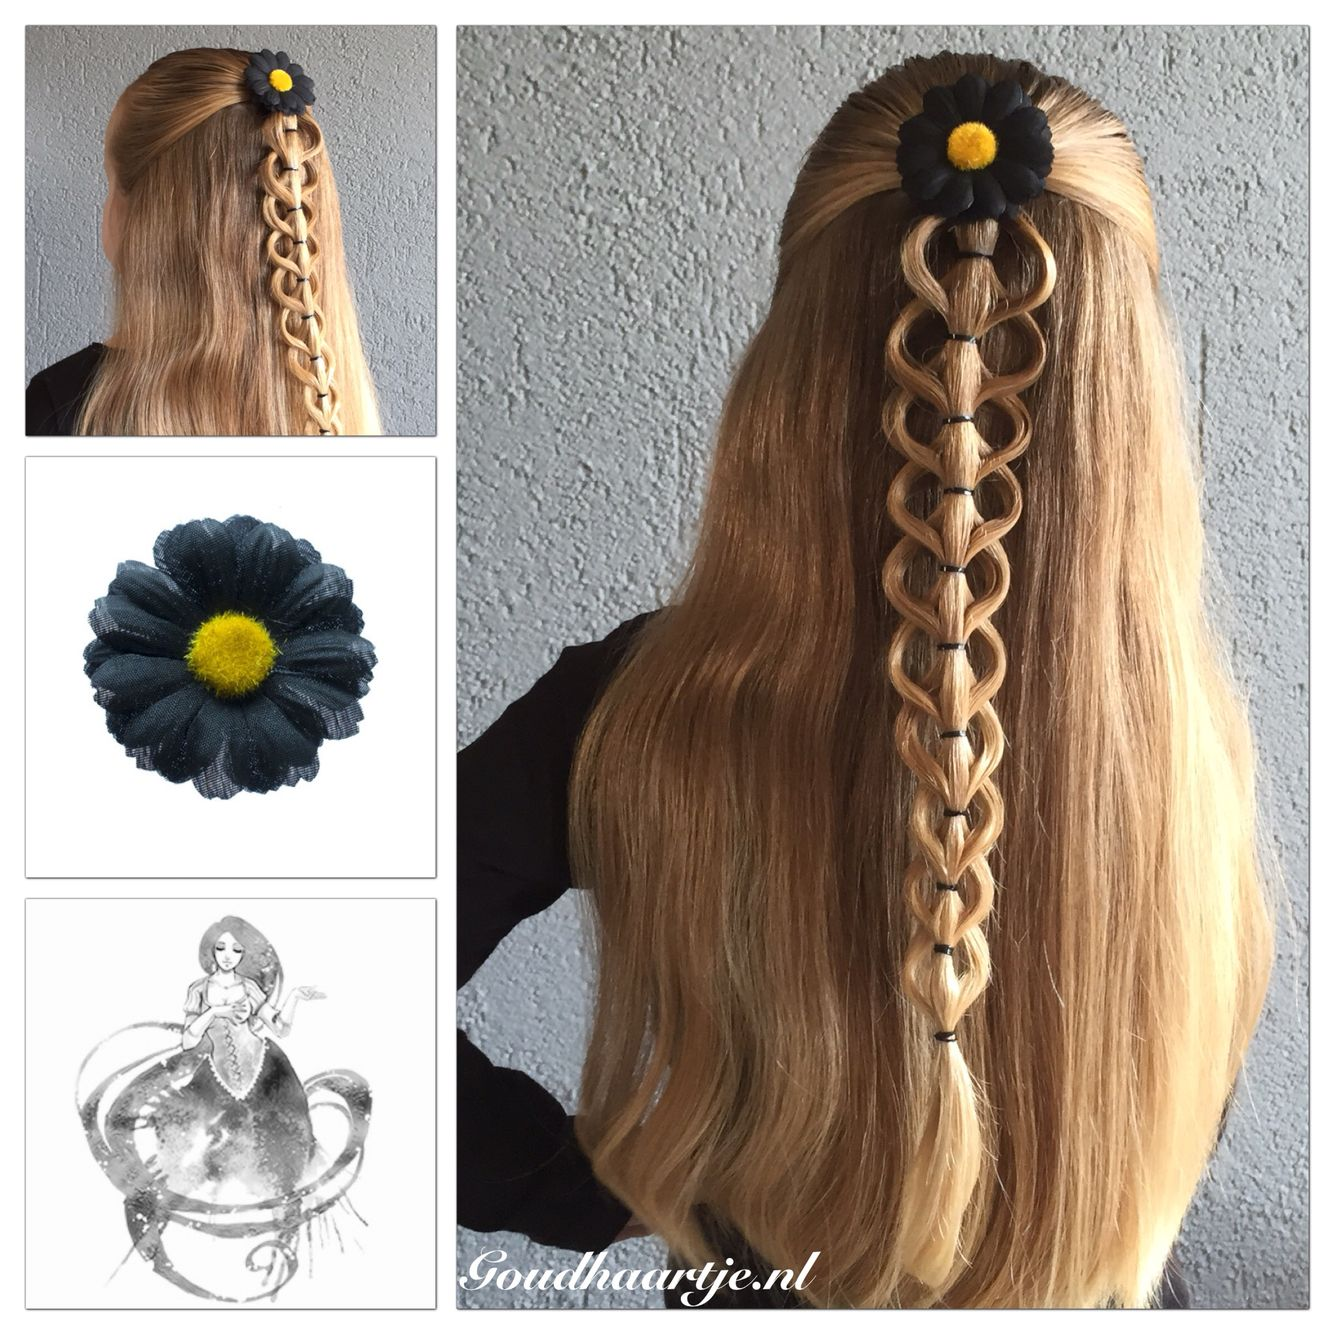 Bubble loop braid with hairflower from Goudhaartje.nl Inspired by…